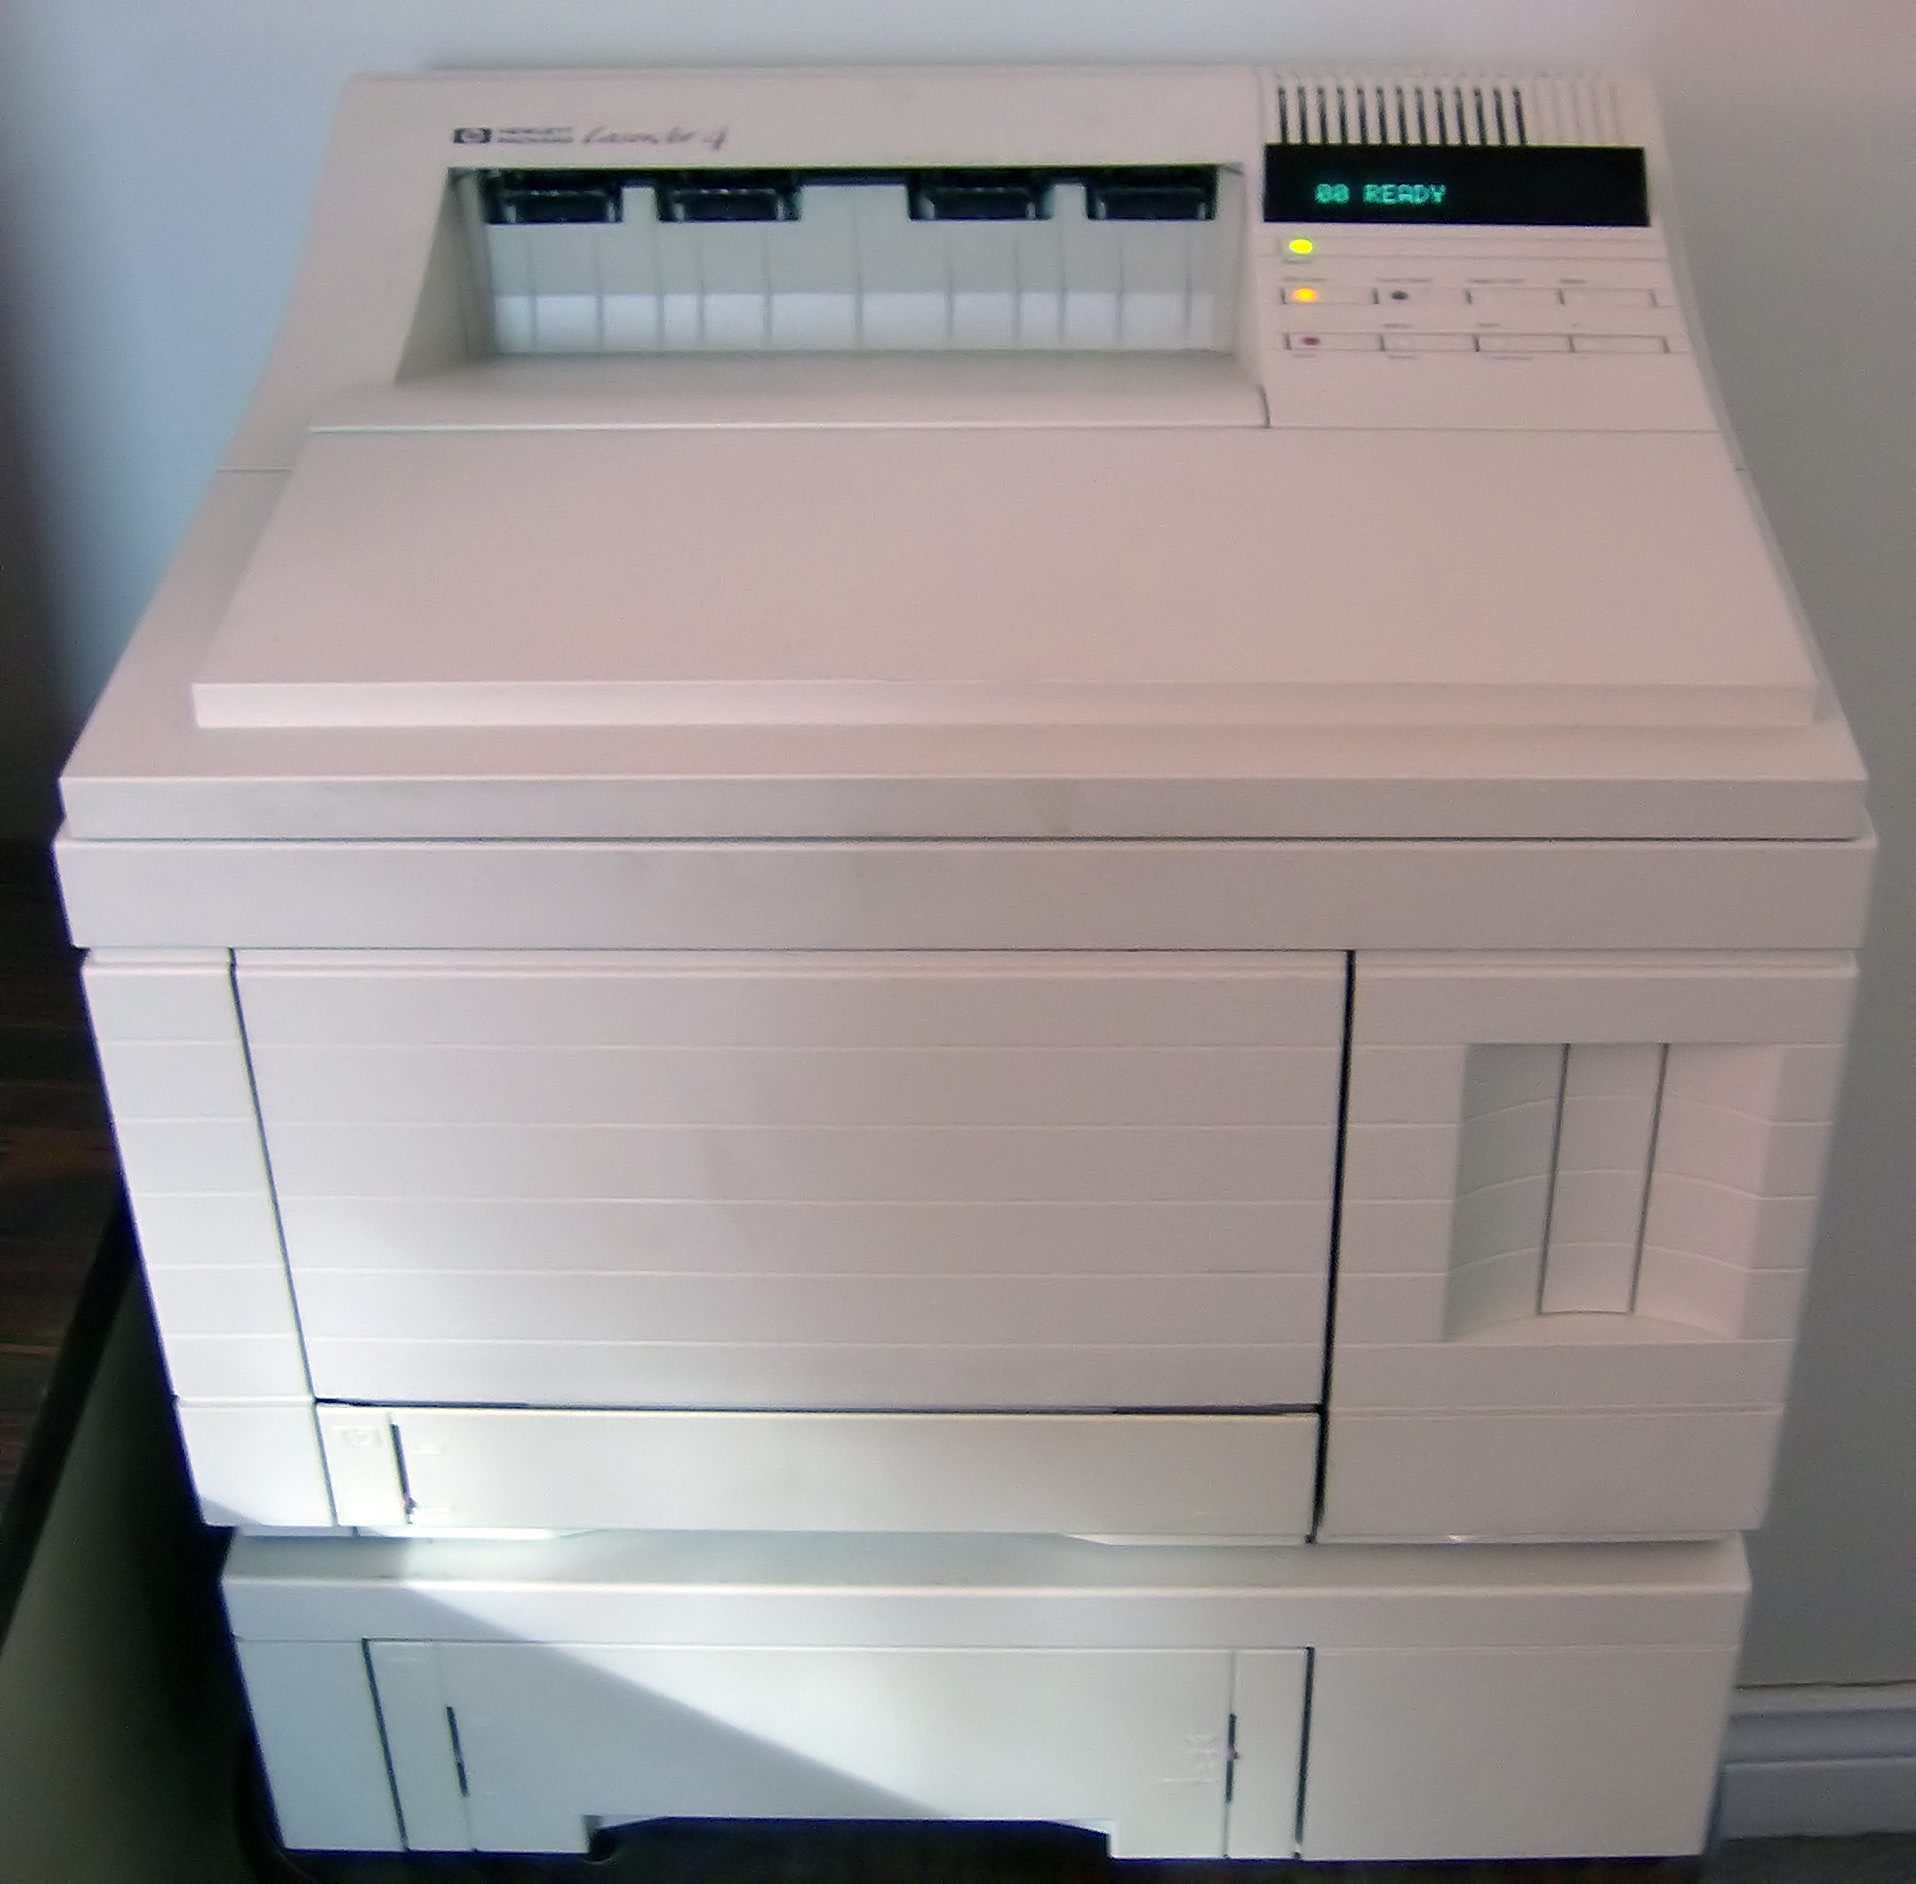 HEWLETT PACKARD LASERJET 4100TN DRIVERS DOWNLOAD FREE